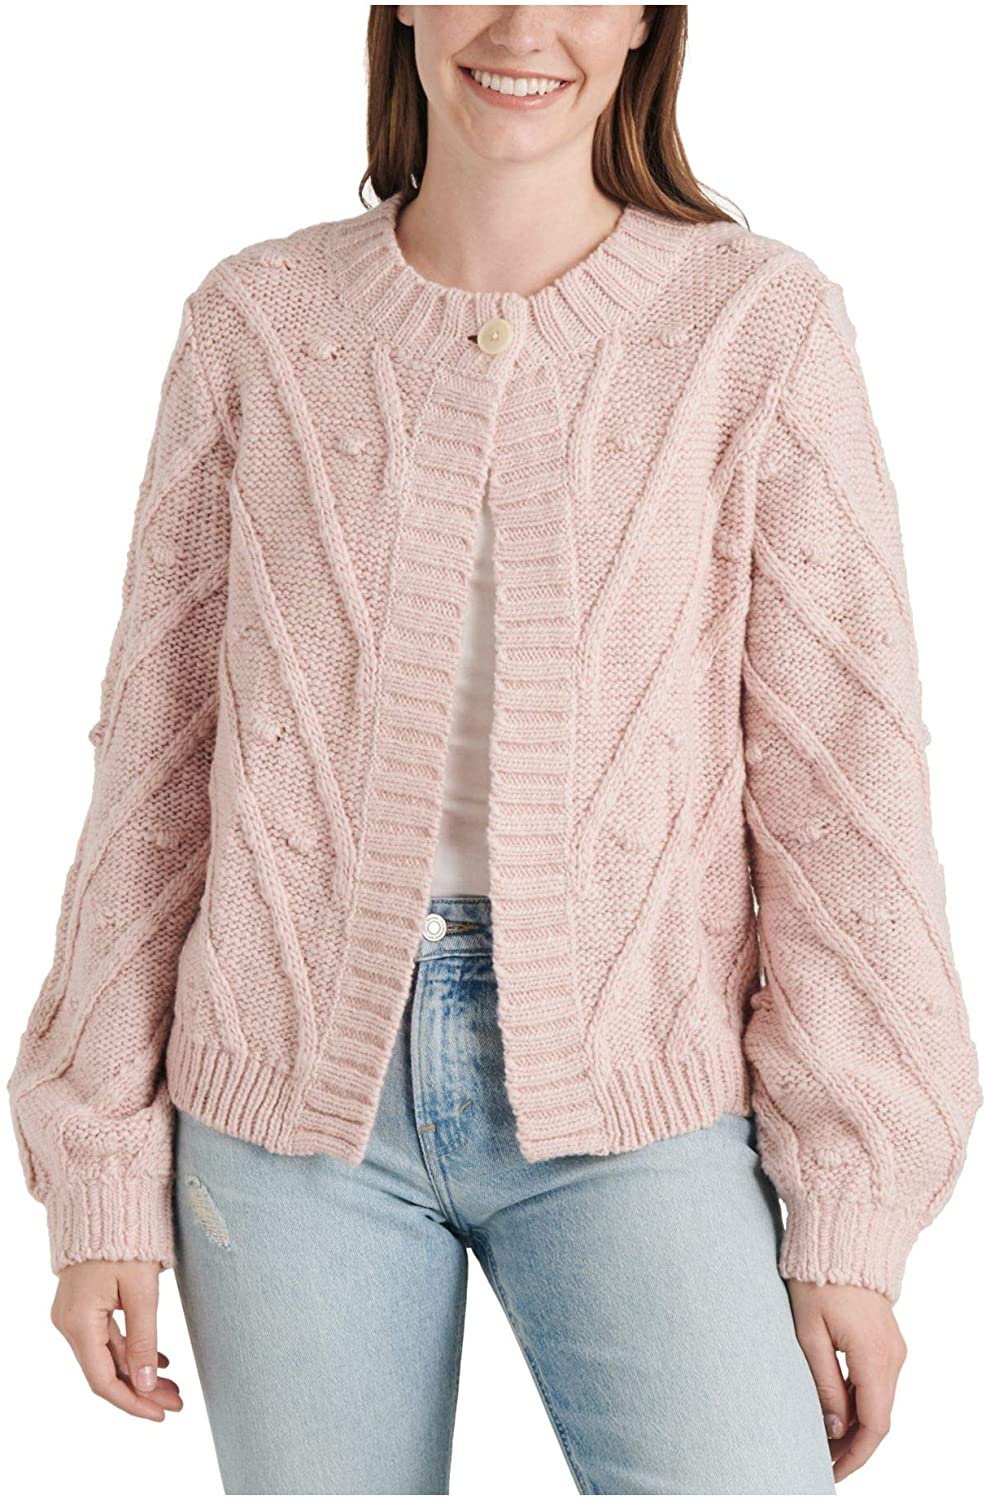 Lucky Brand Womens Pink Long Sleeve Open Cardigan Tunic Top Size S